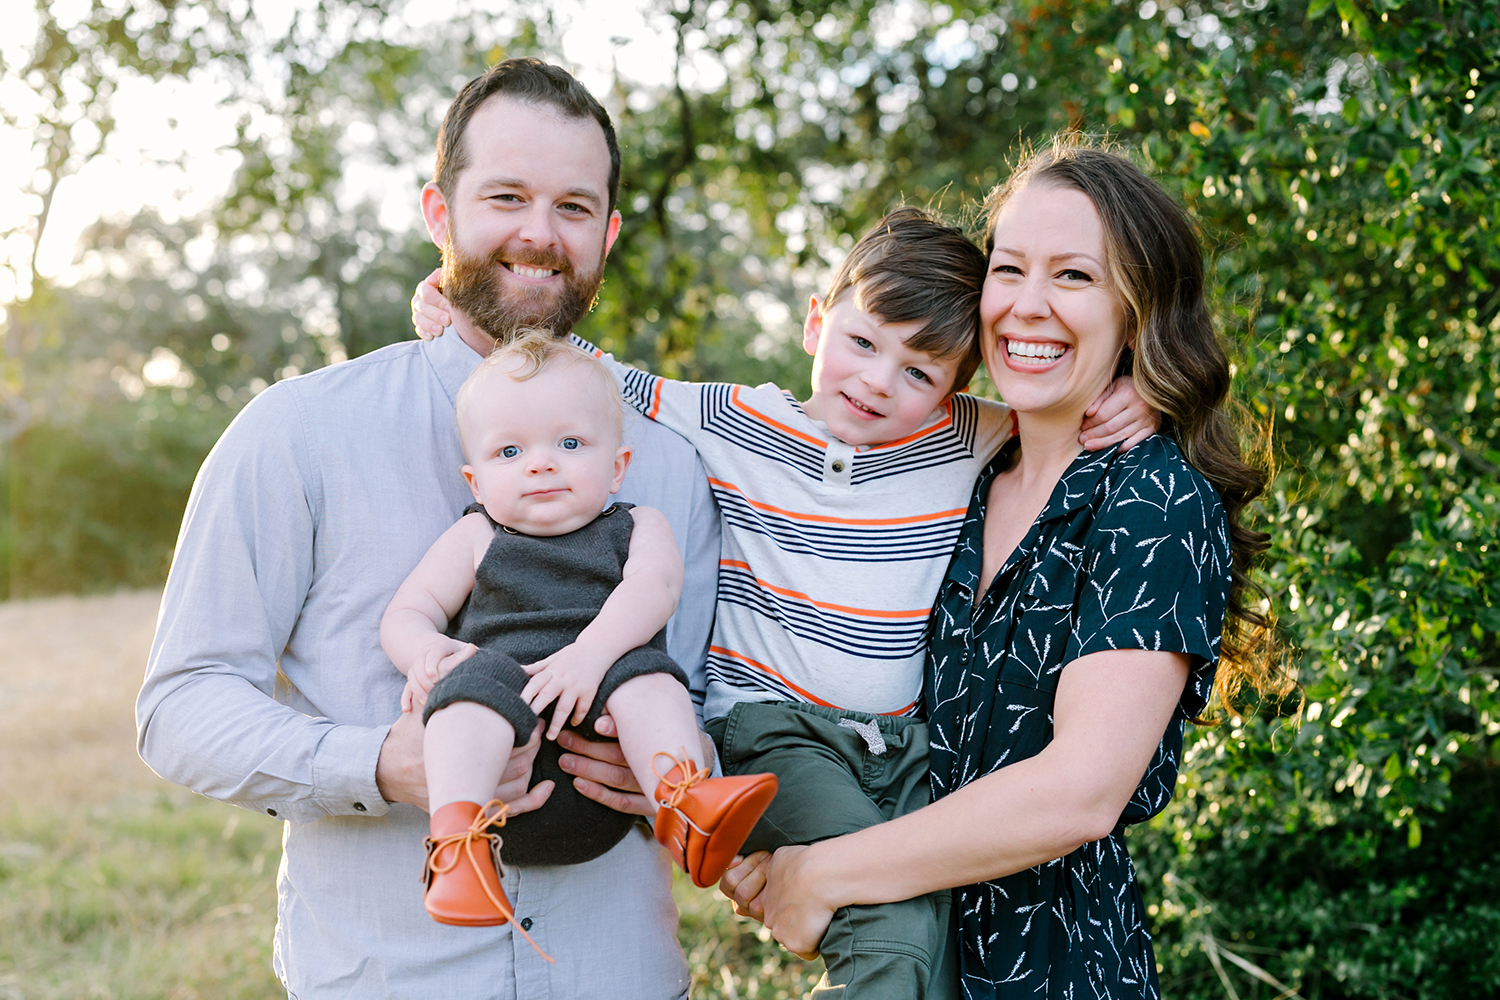 austin-family-portraits-photographer-kimberly-brooke-03.jpg